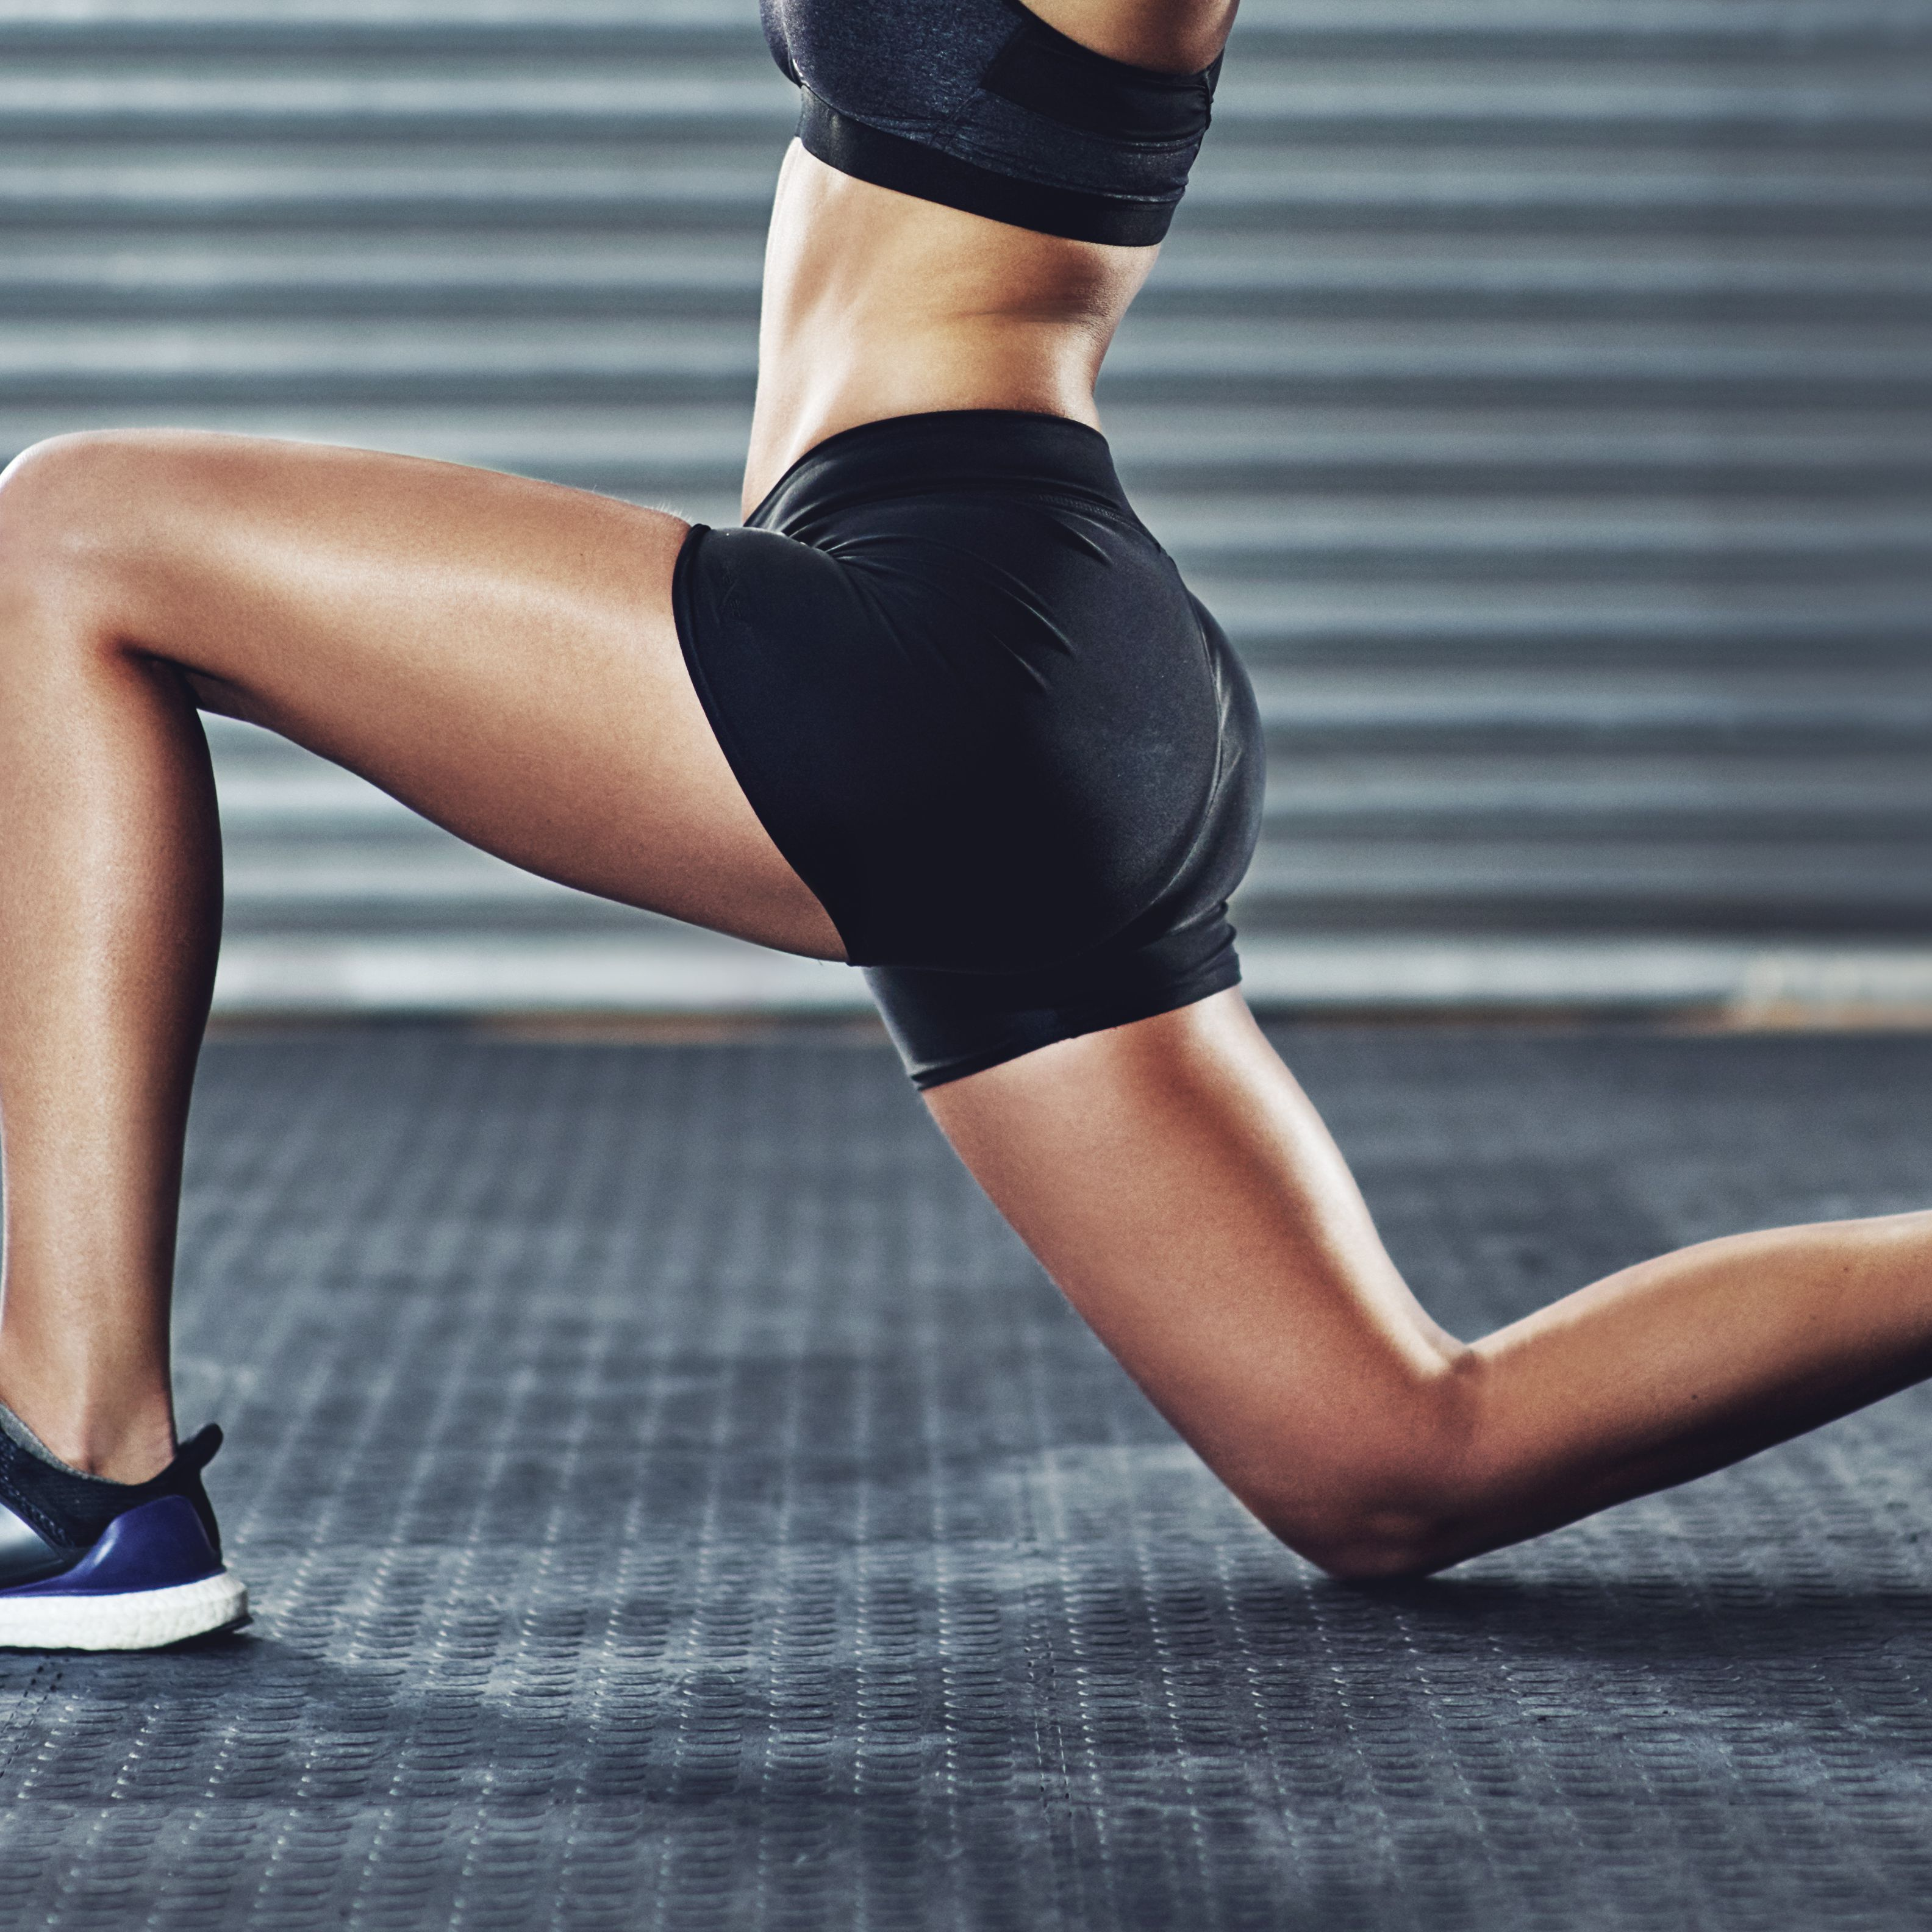 How To Lose Thigh Fat With Medical And Natural Methods